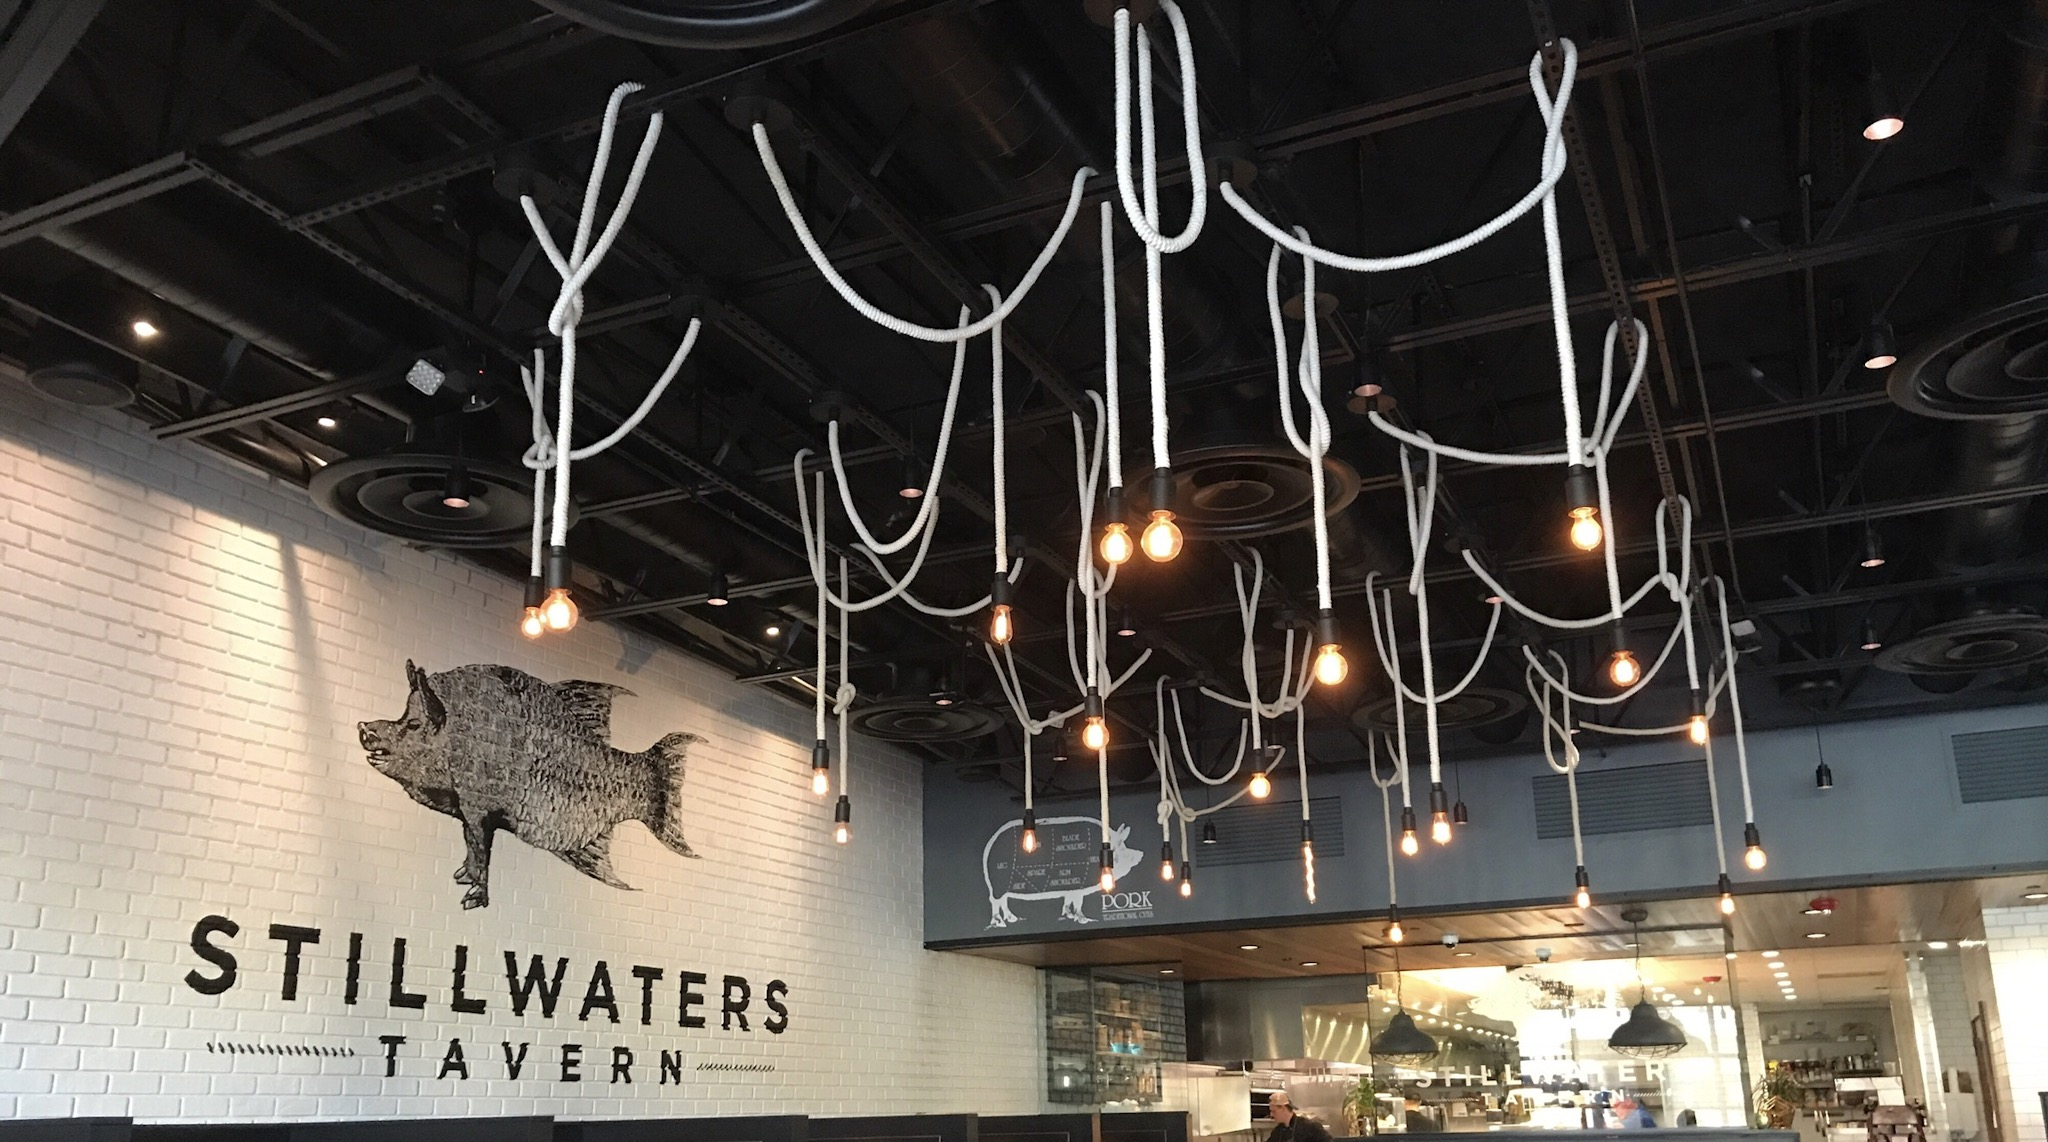 The beautiful interior or Stillwaters